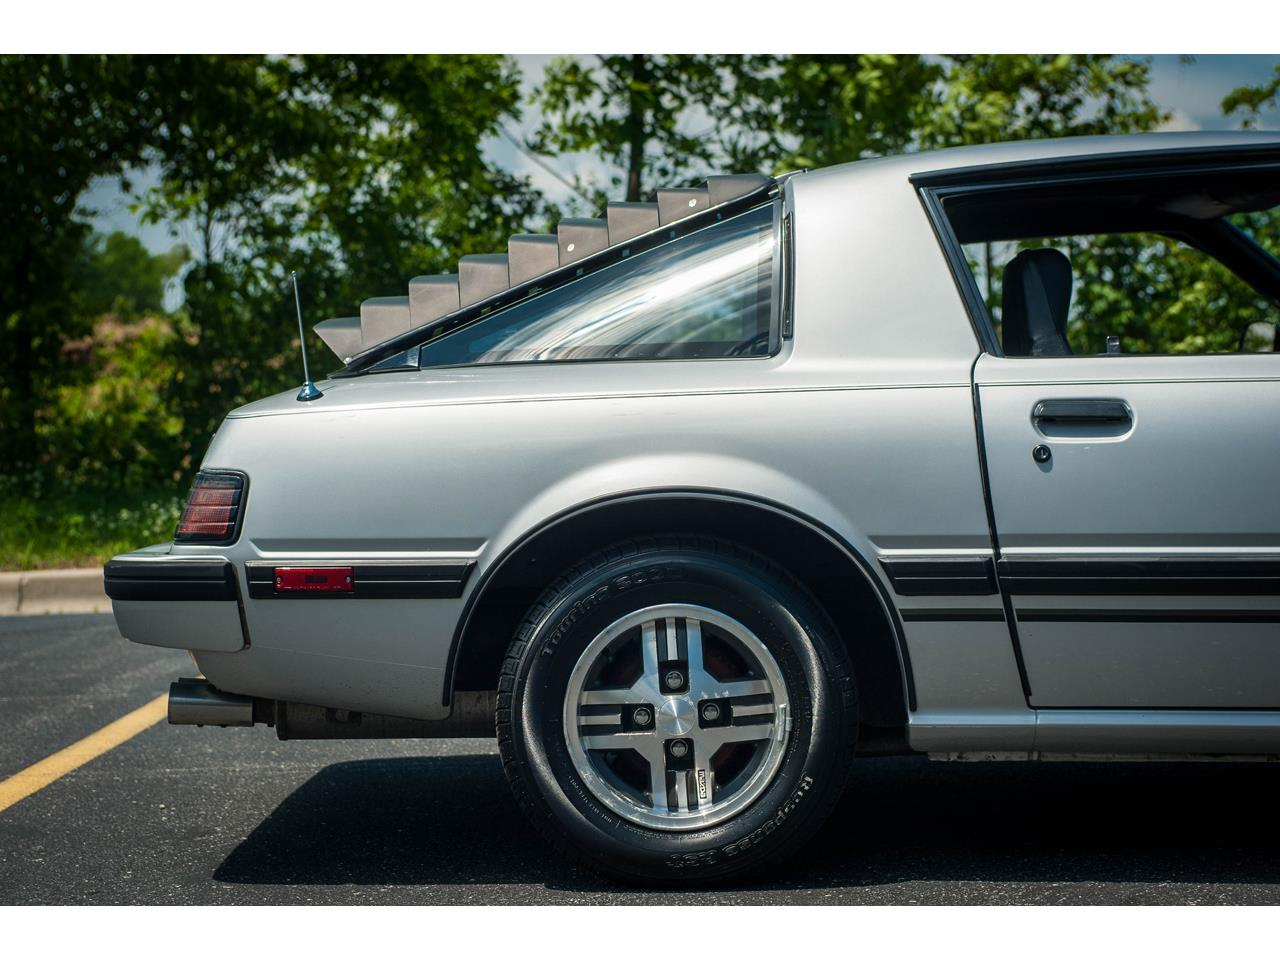 Large Picture of 1982 Mazda RX-7 - $14,500.00 Offered by Gateway Classic Cars - St. Louis - QB9V